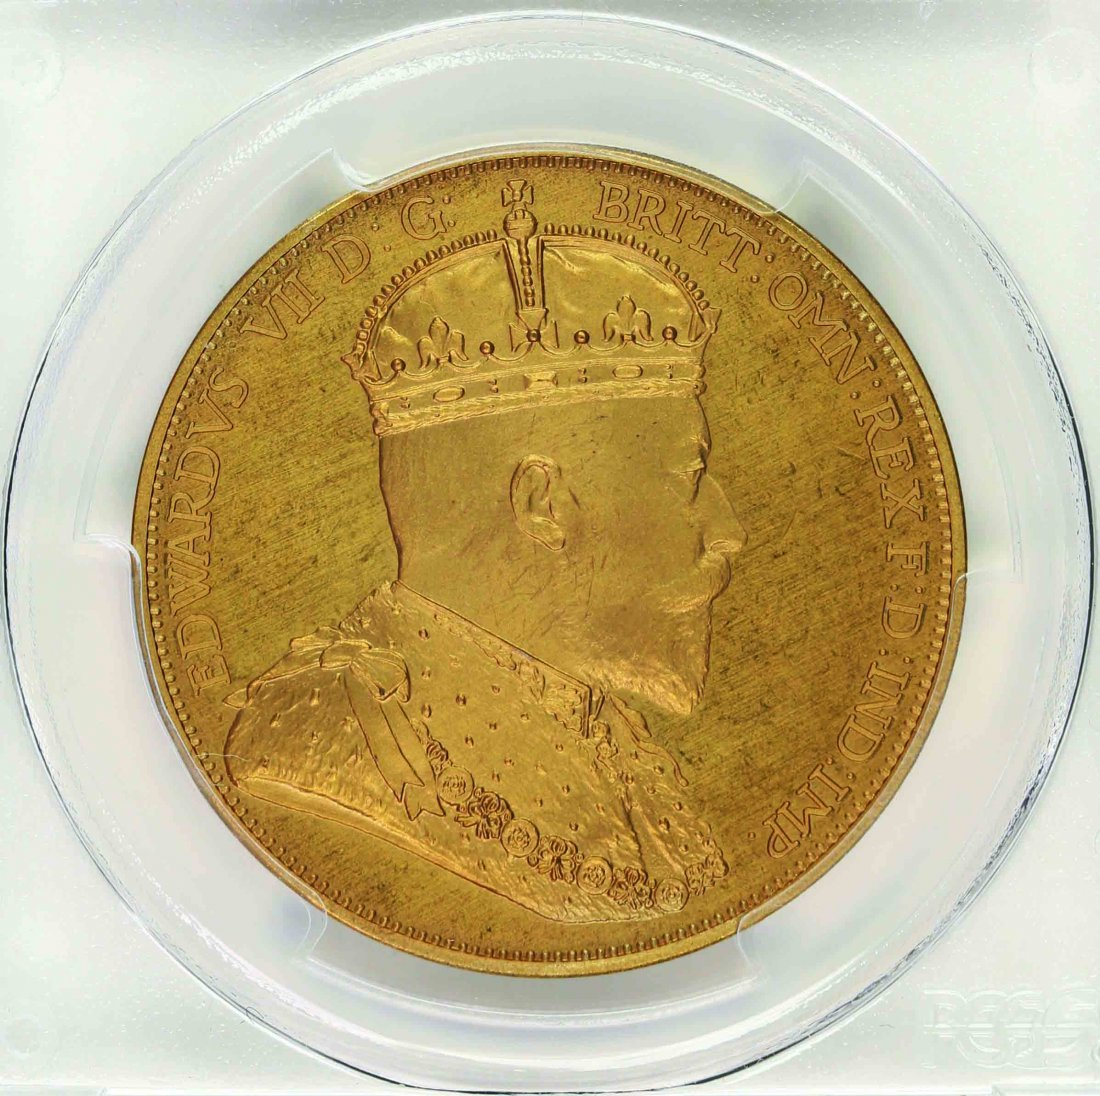 Jersey 1910 4 Shillings Proof, PCGS PR66 - 2